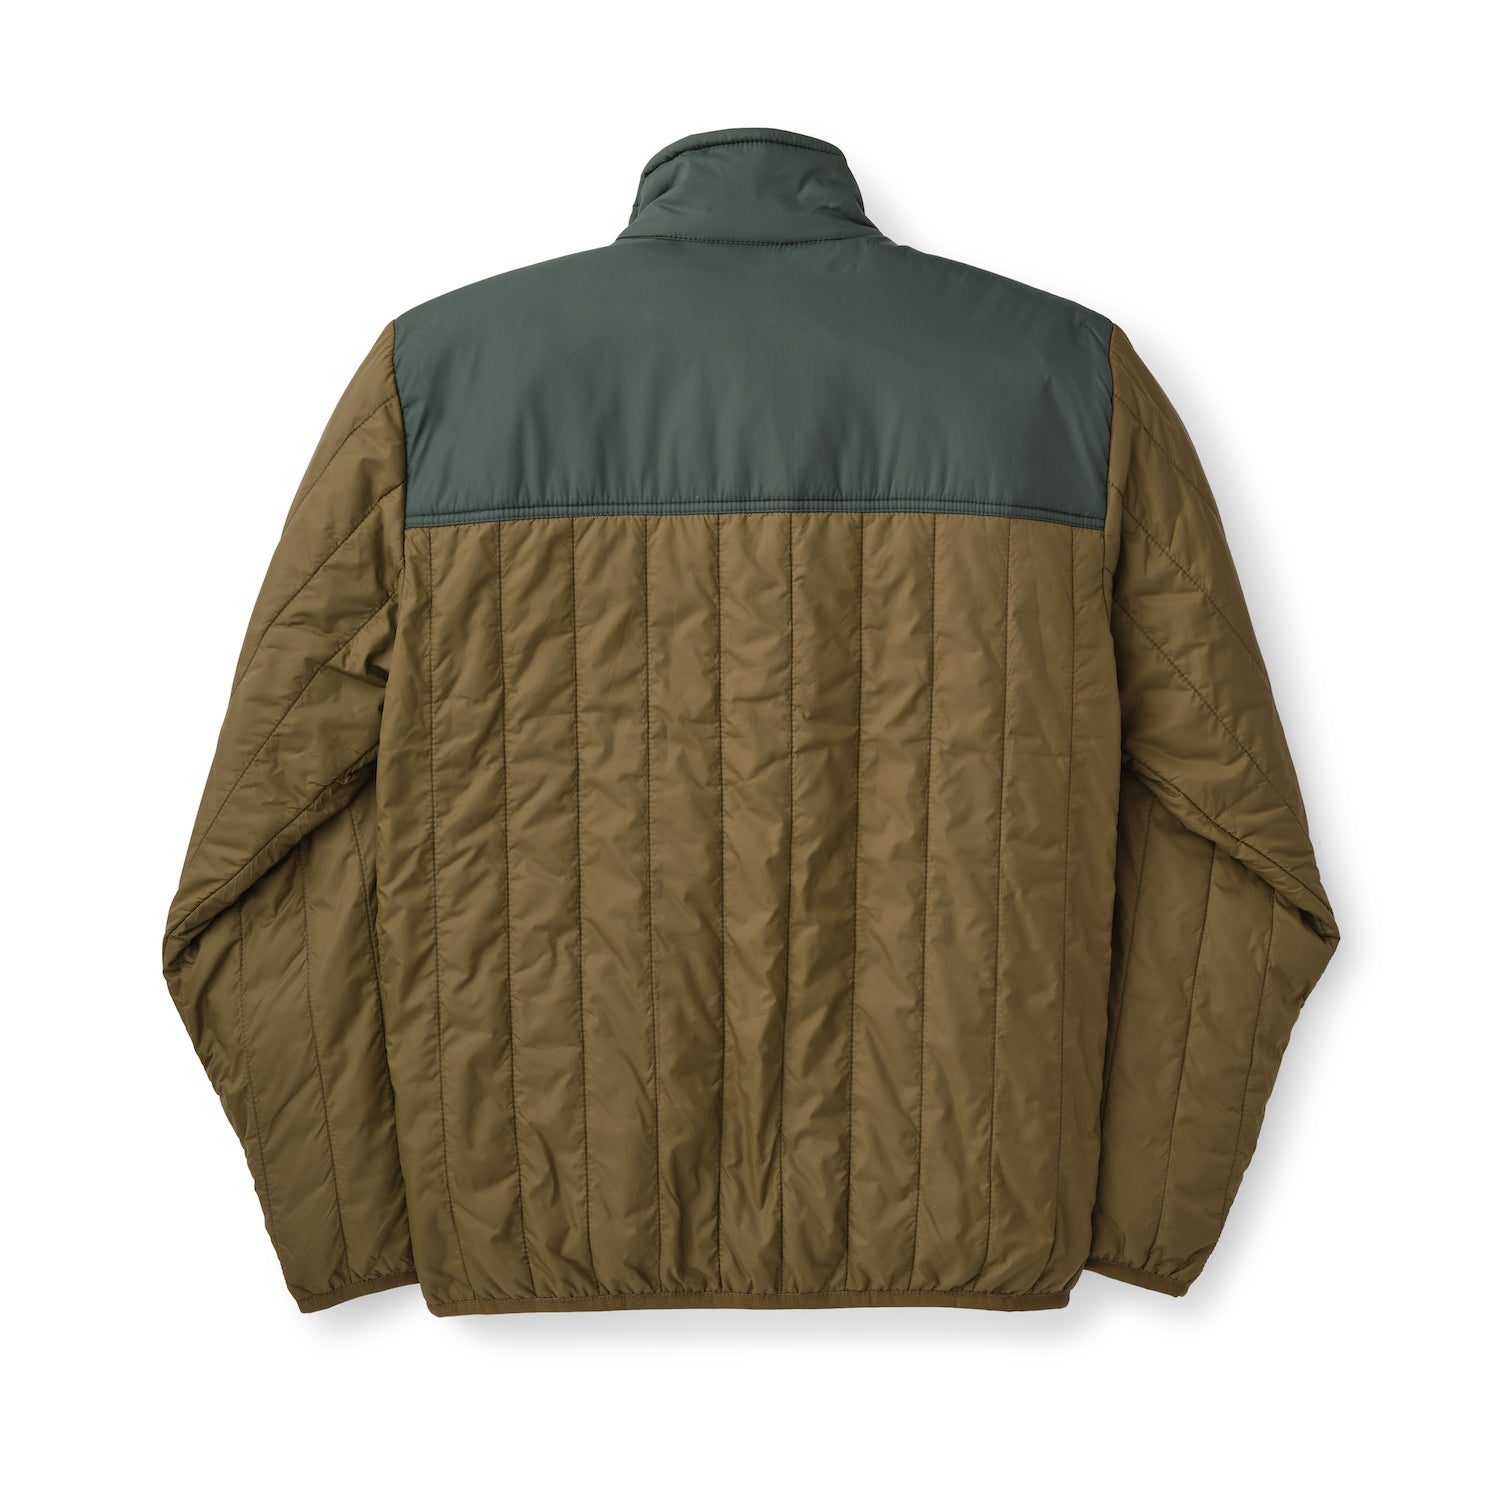 Ultralight Jacket - Olive / Spruce